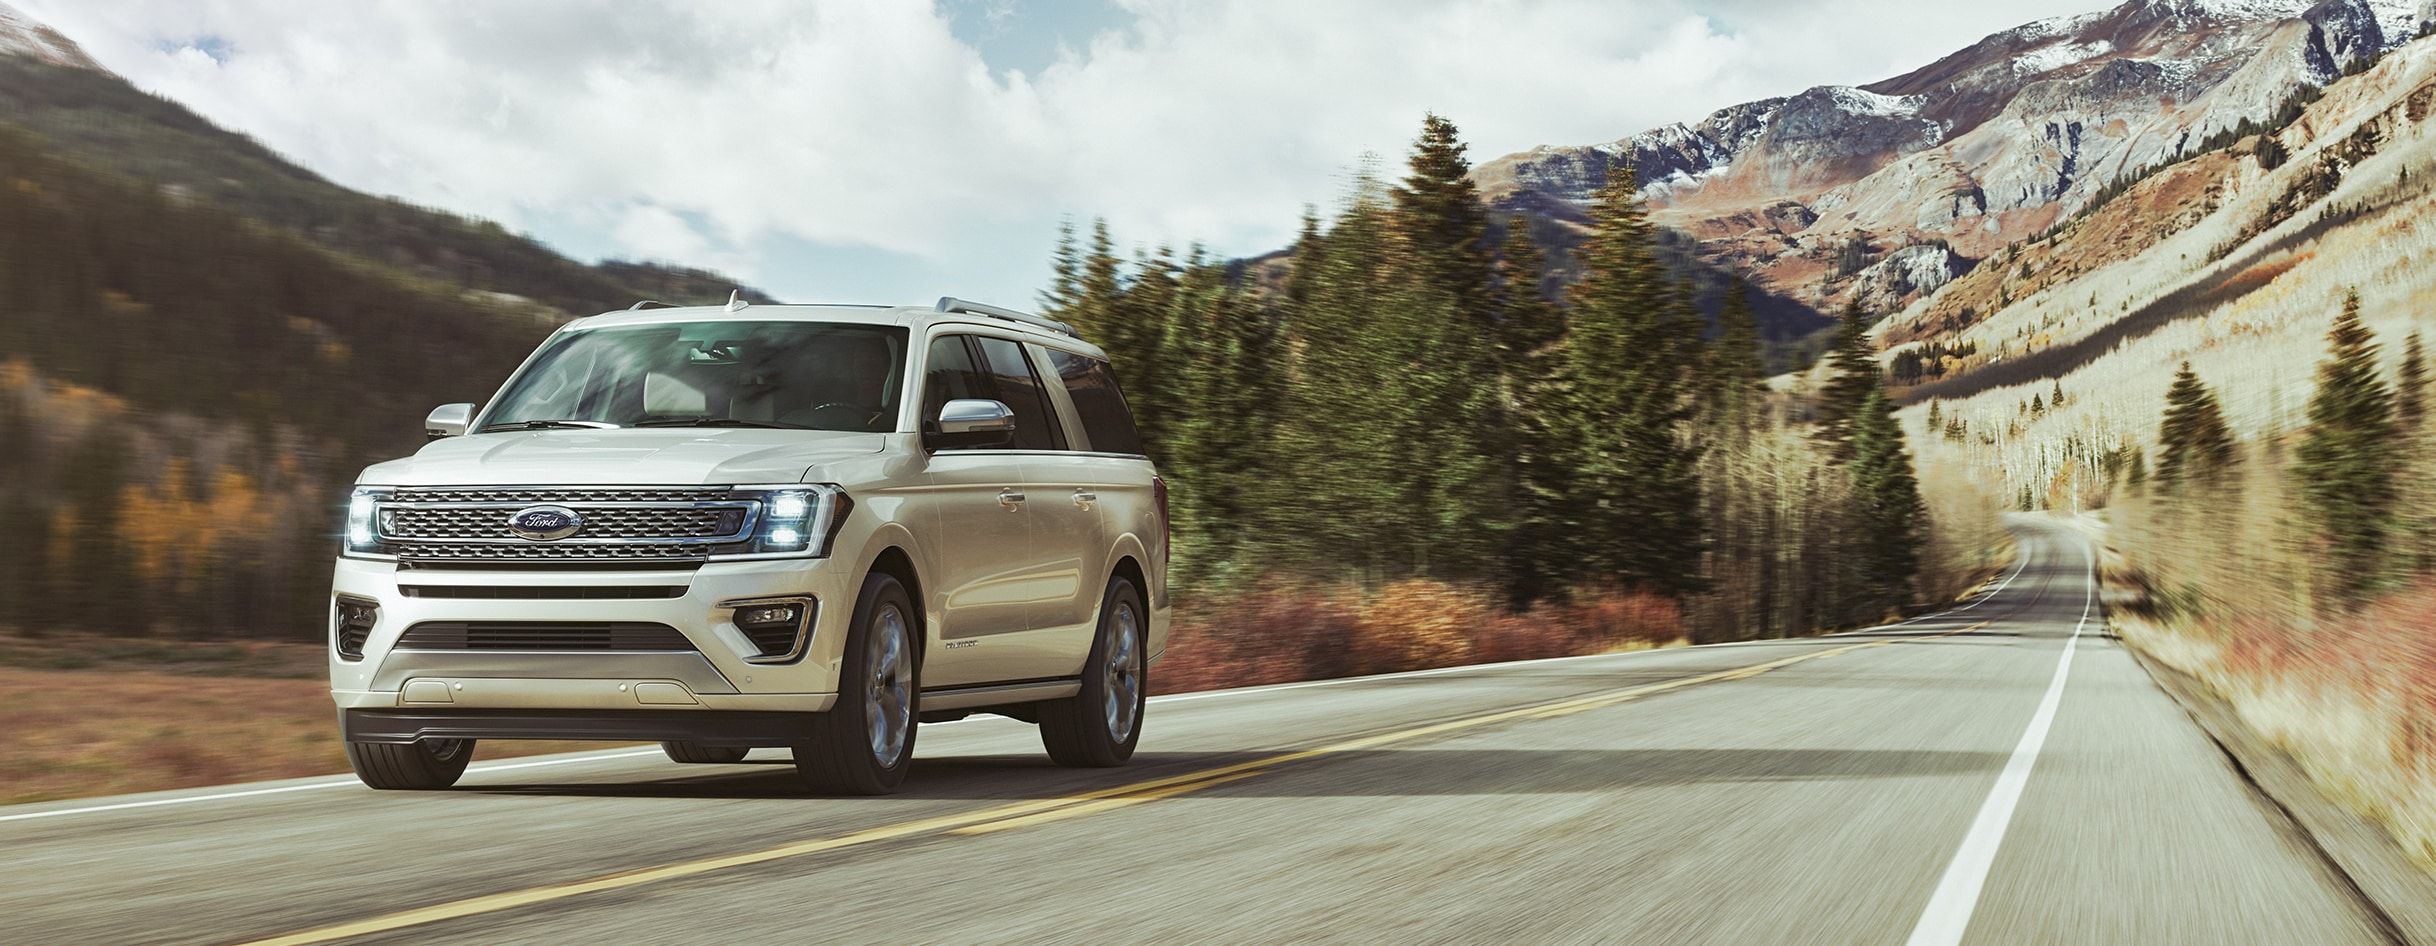 New 2018 Ford Expedition For Sale Near Brewster